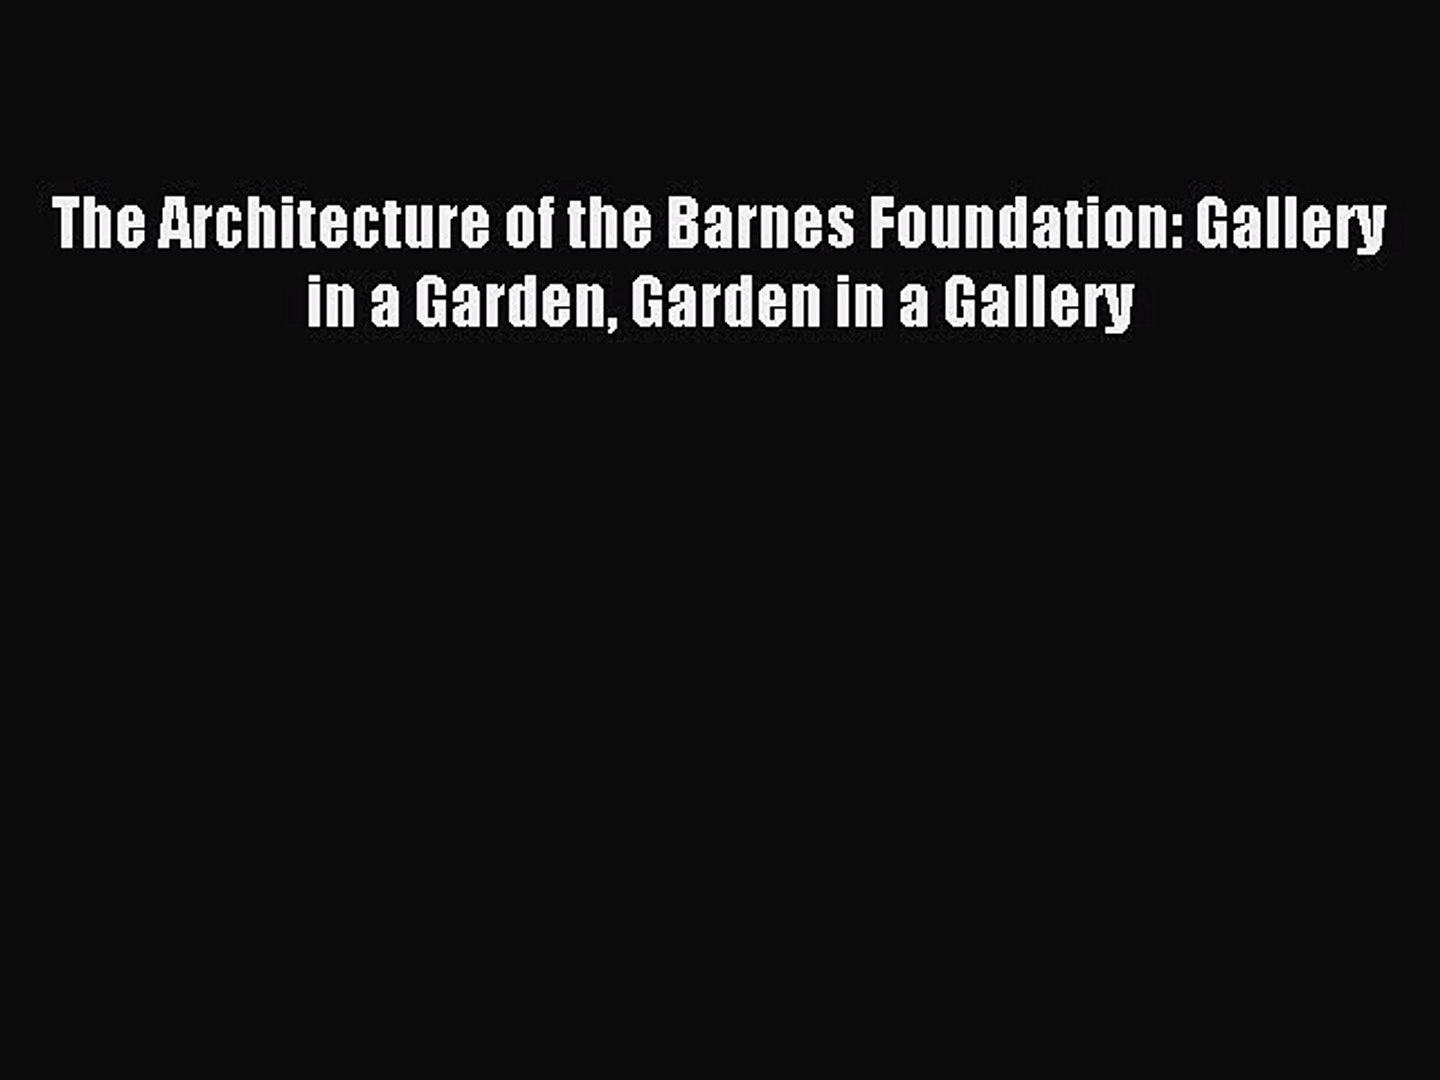 Read The Architecture of the Barnes Foundation: Gallery in a Garden Garden in a Gallery Ebook